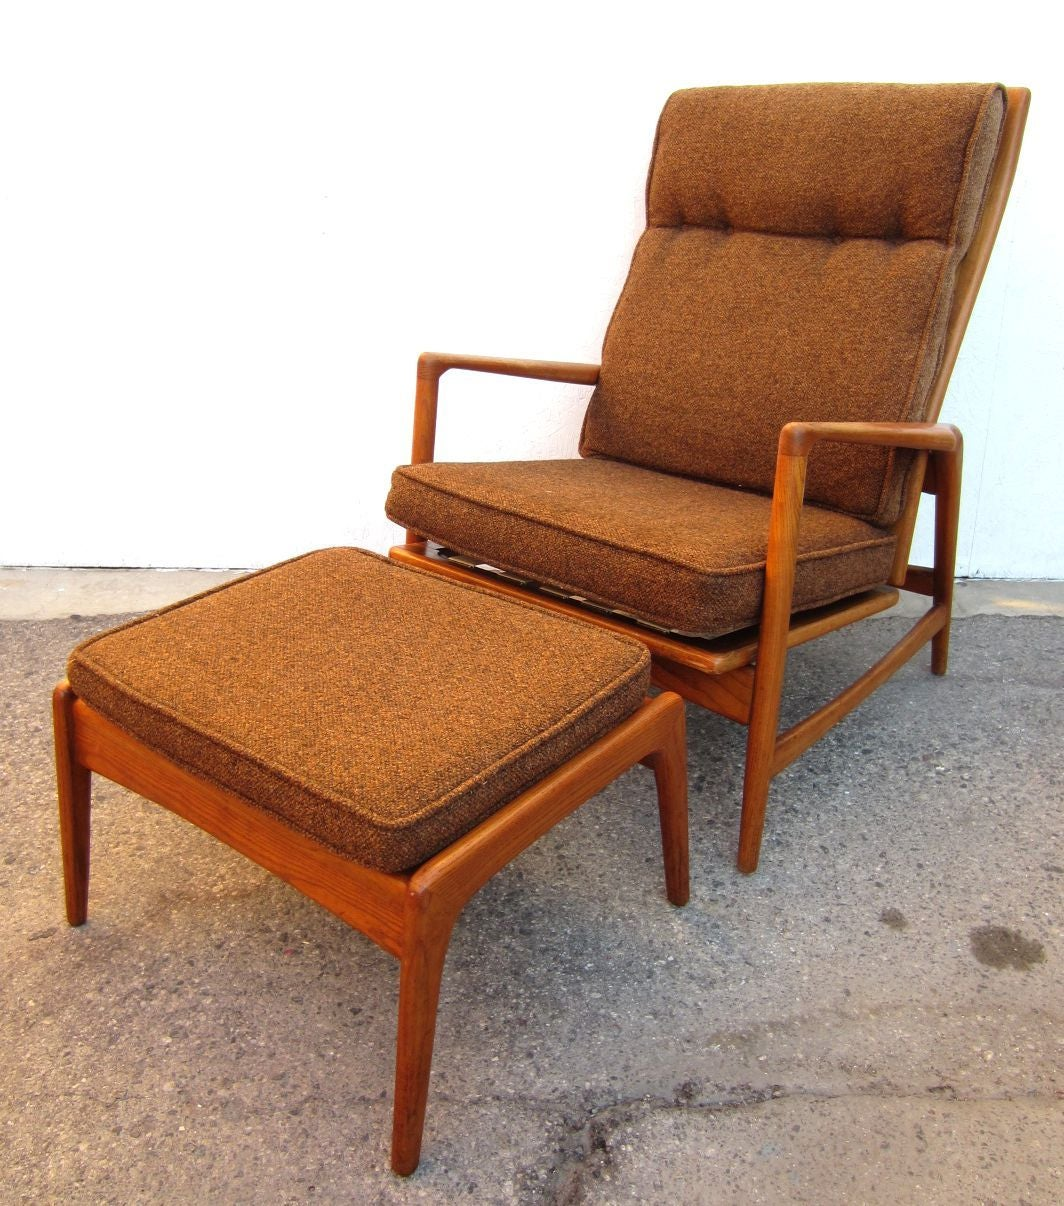 Mid 20th Century 1950 Danish Mid Century Modern Lounge Chair And Ottoman, Ib